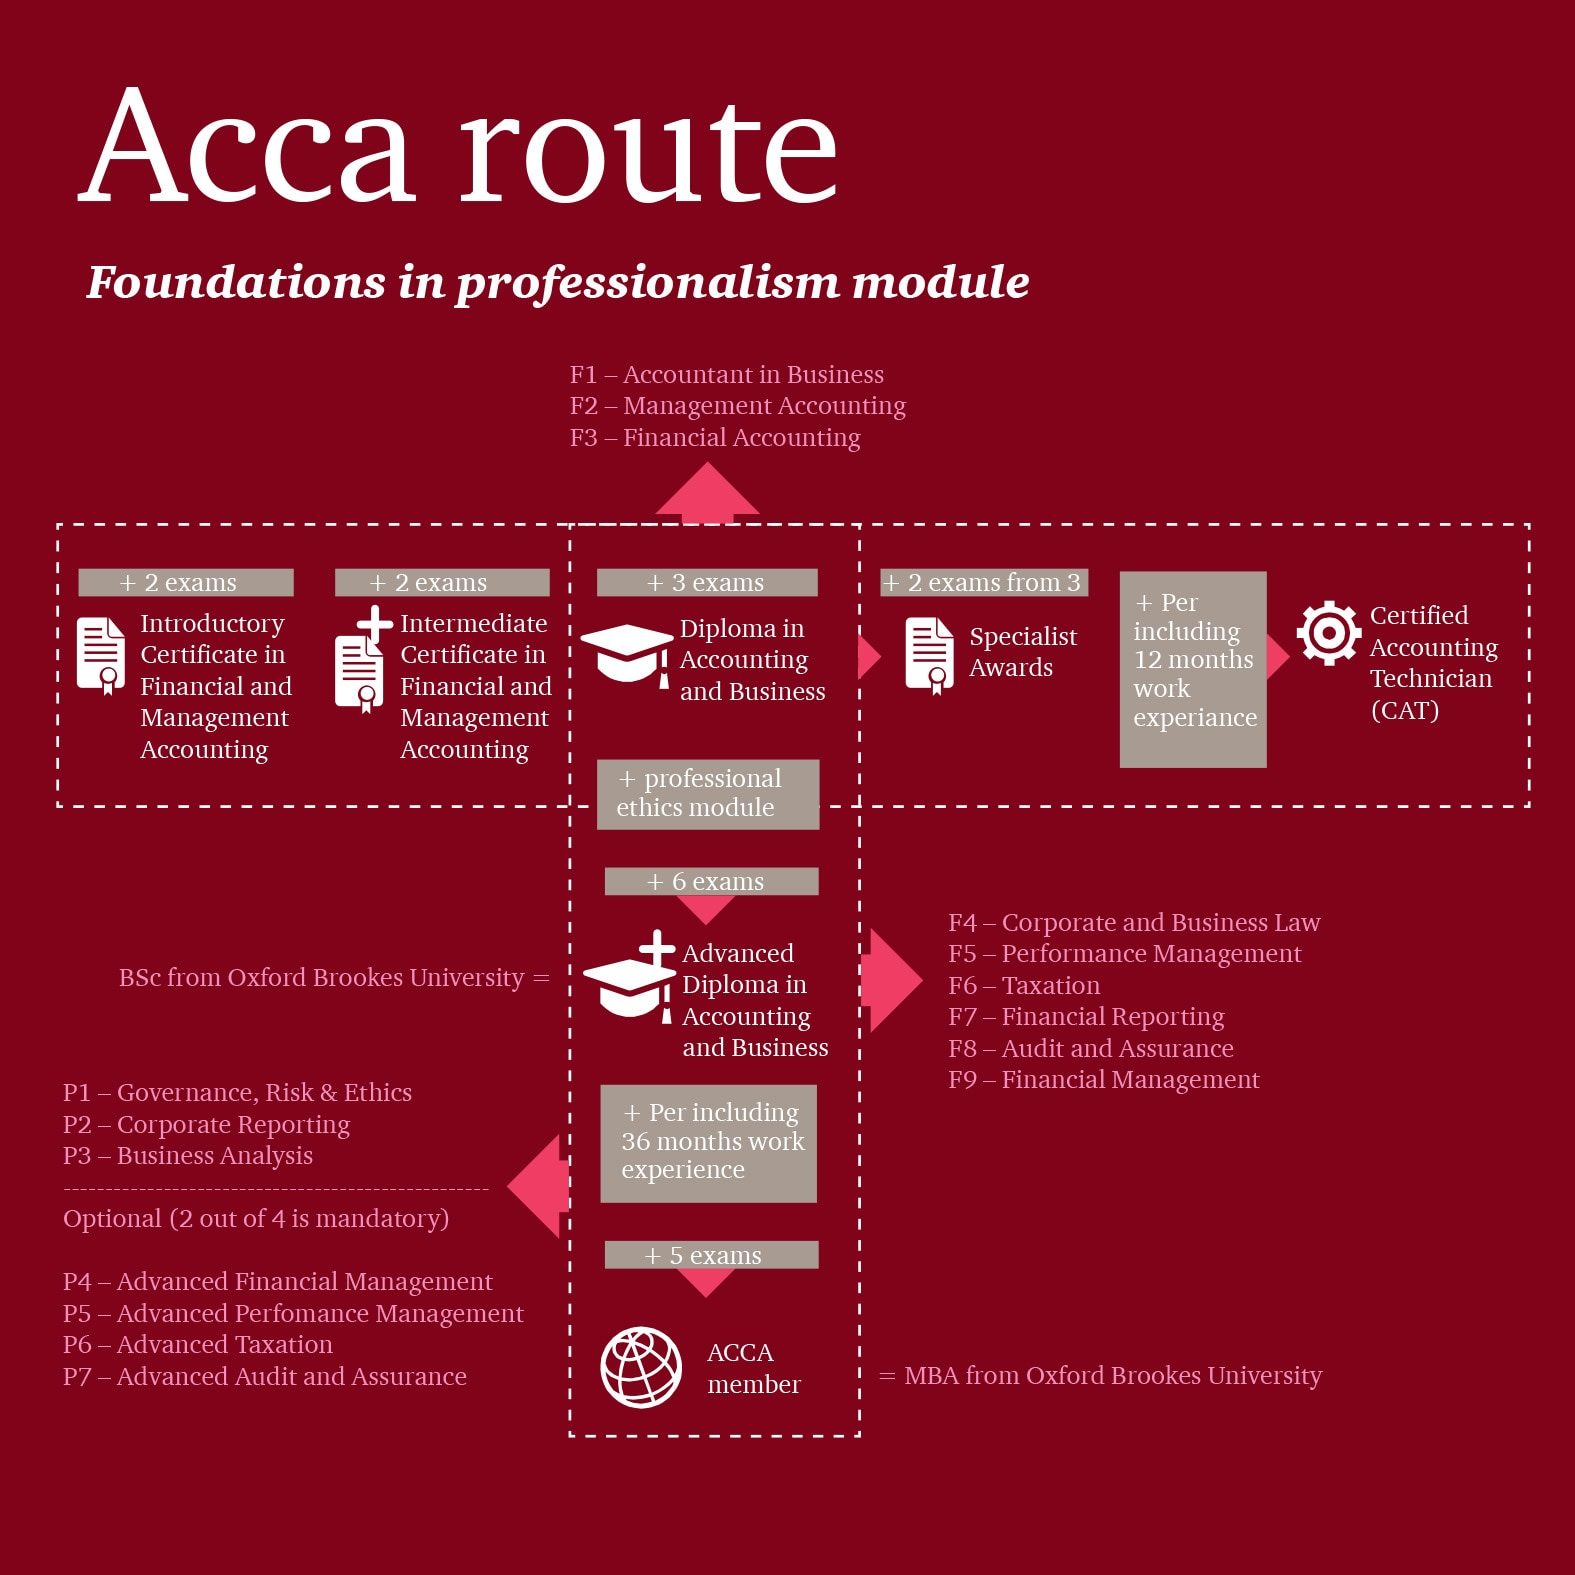 ACCA route